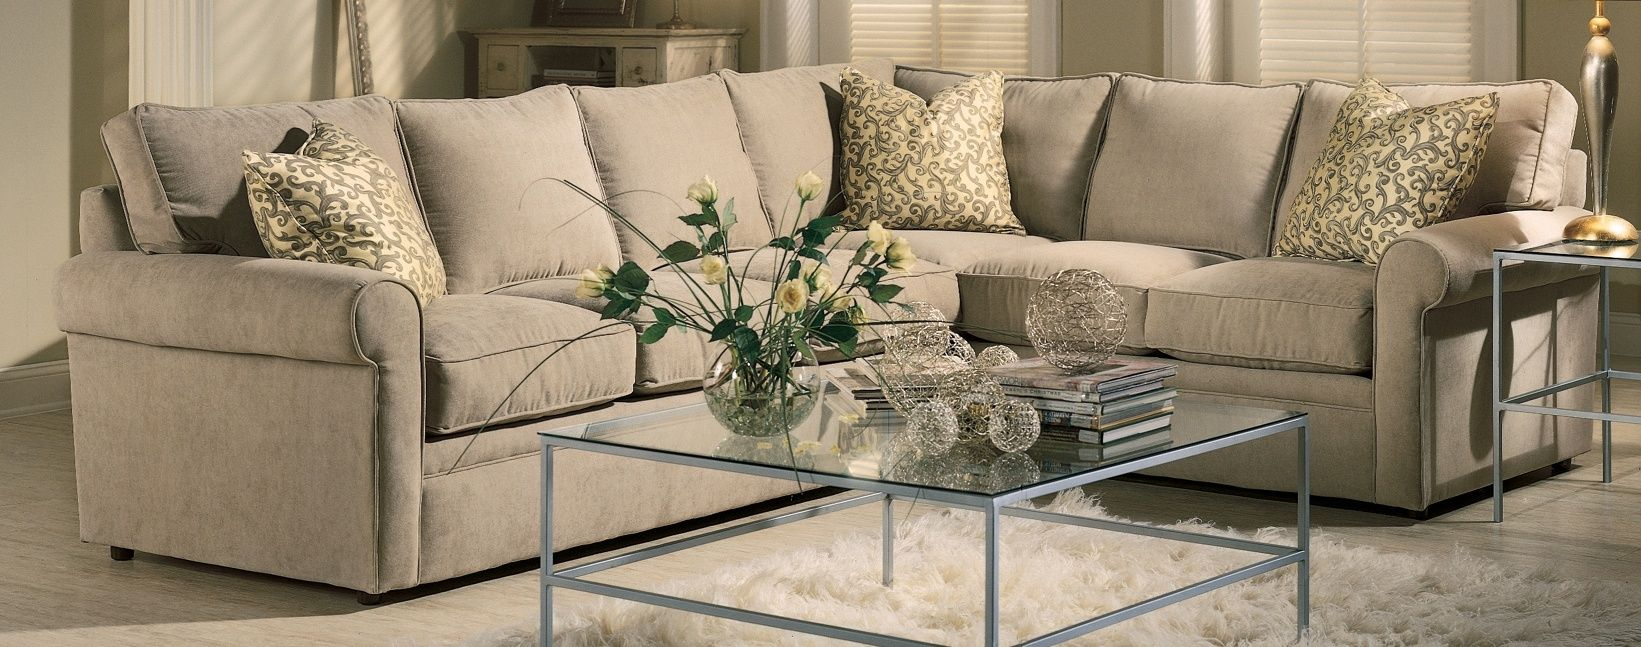 elegant letter furniture design. beautiful combination of sofas with a sheepskin rug in living room. elegant letter furniture design